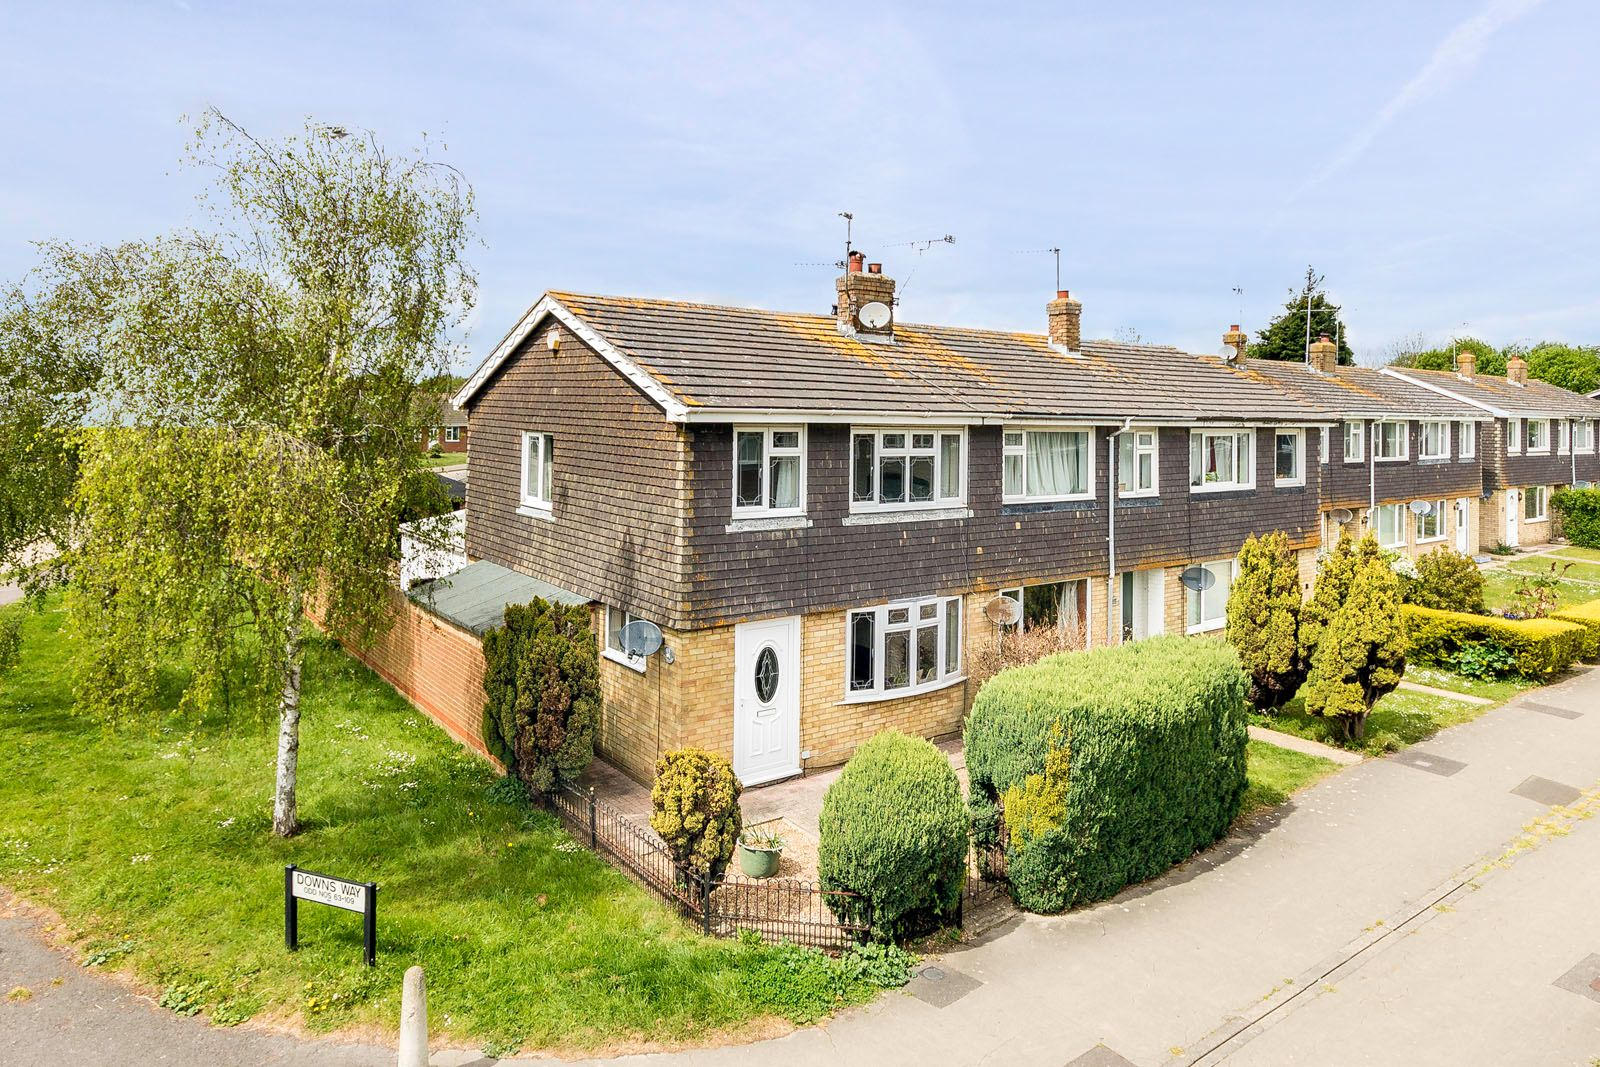 3 bed House to rent in East Preston - Property Image 1